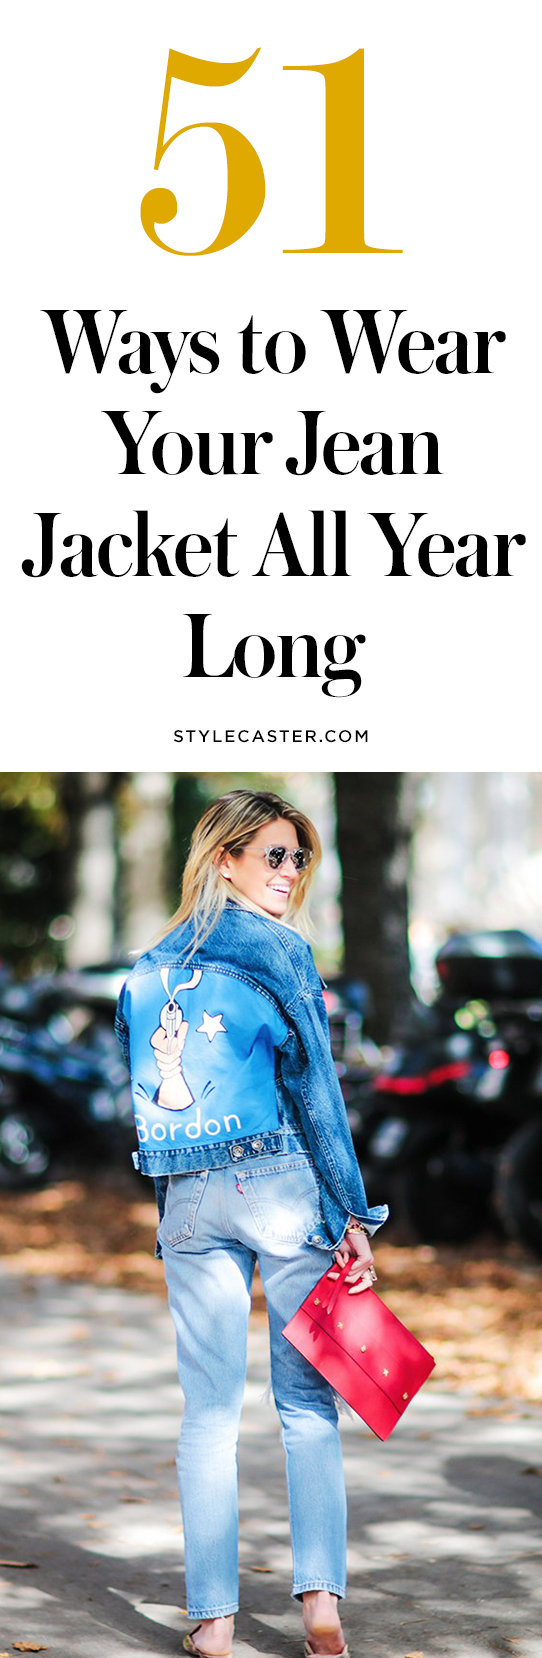 How to wear a jean jacket   @stylecaster